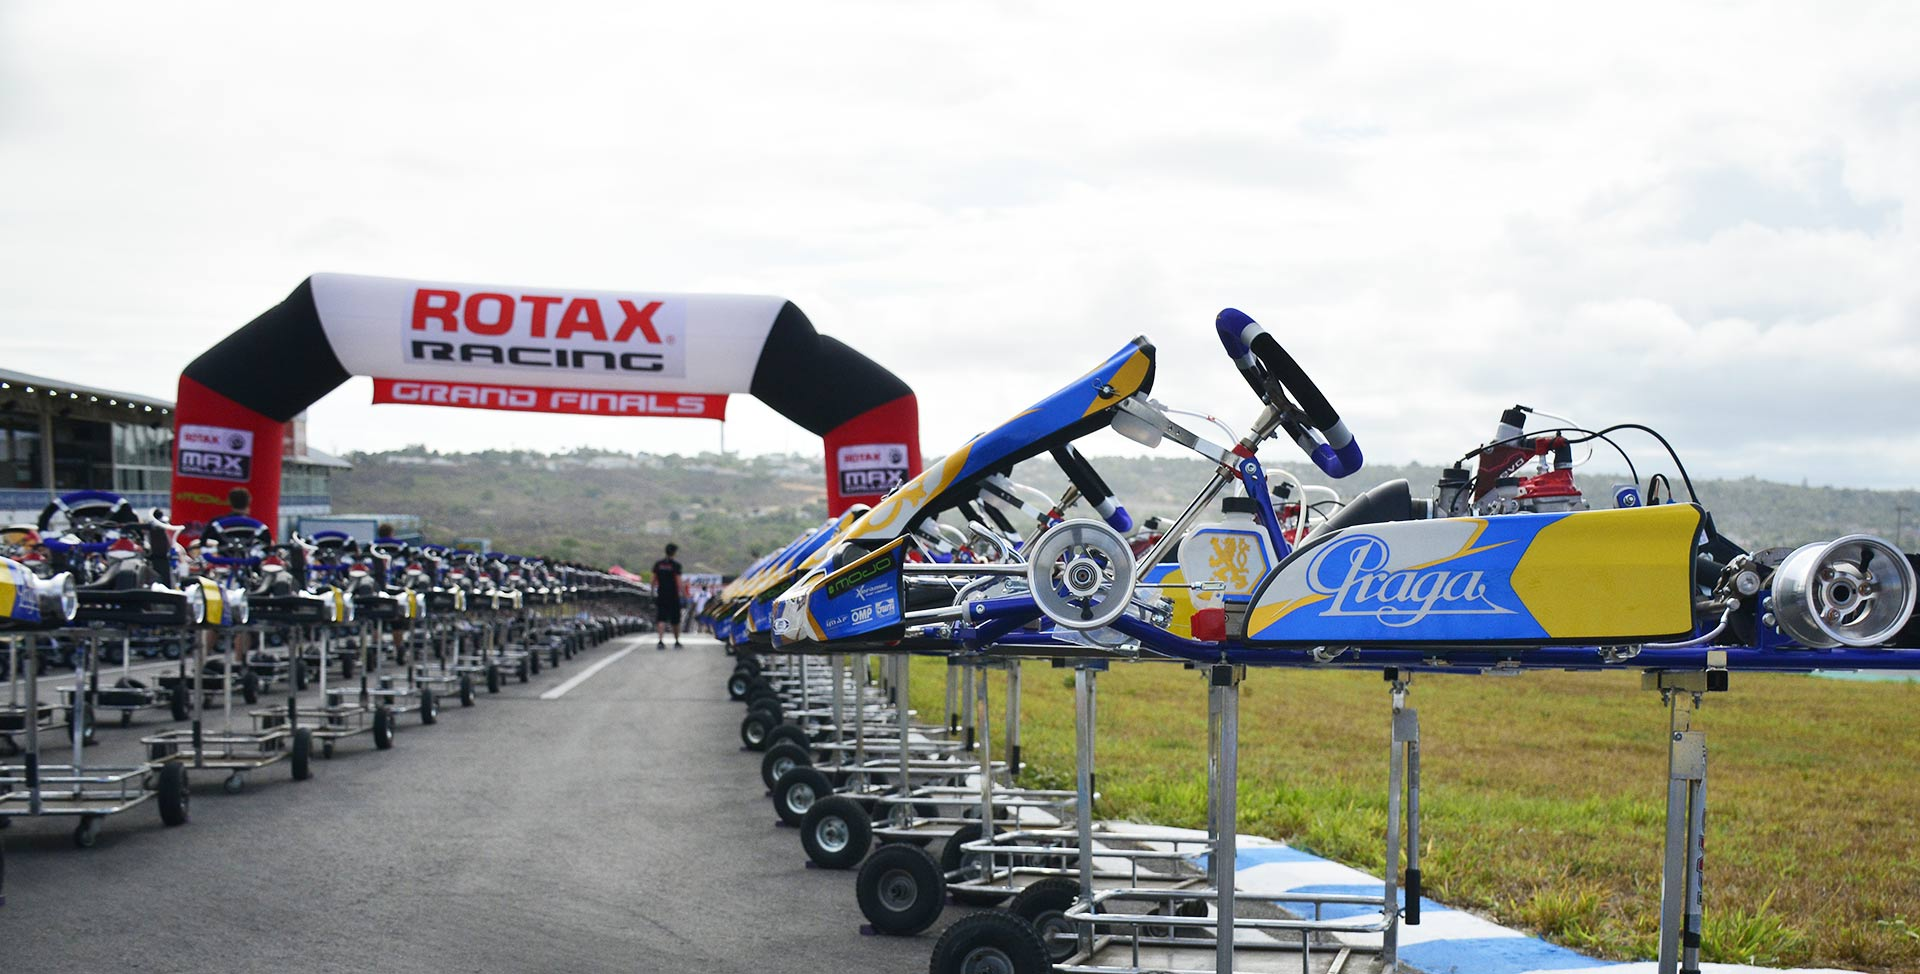 Praga Kart and Rotax. Together once again in Brazil